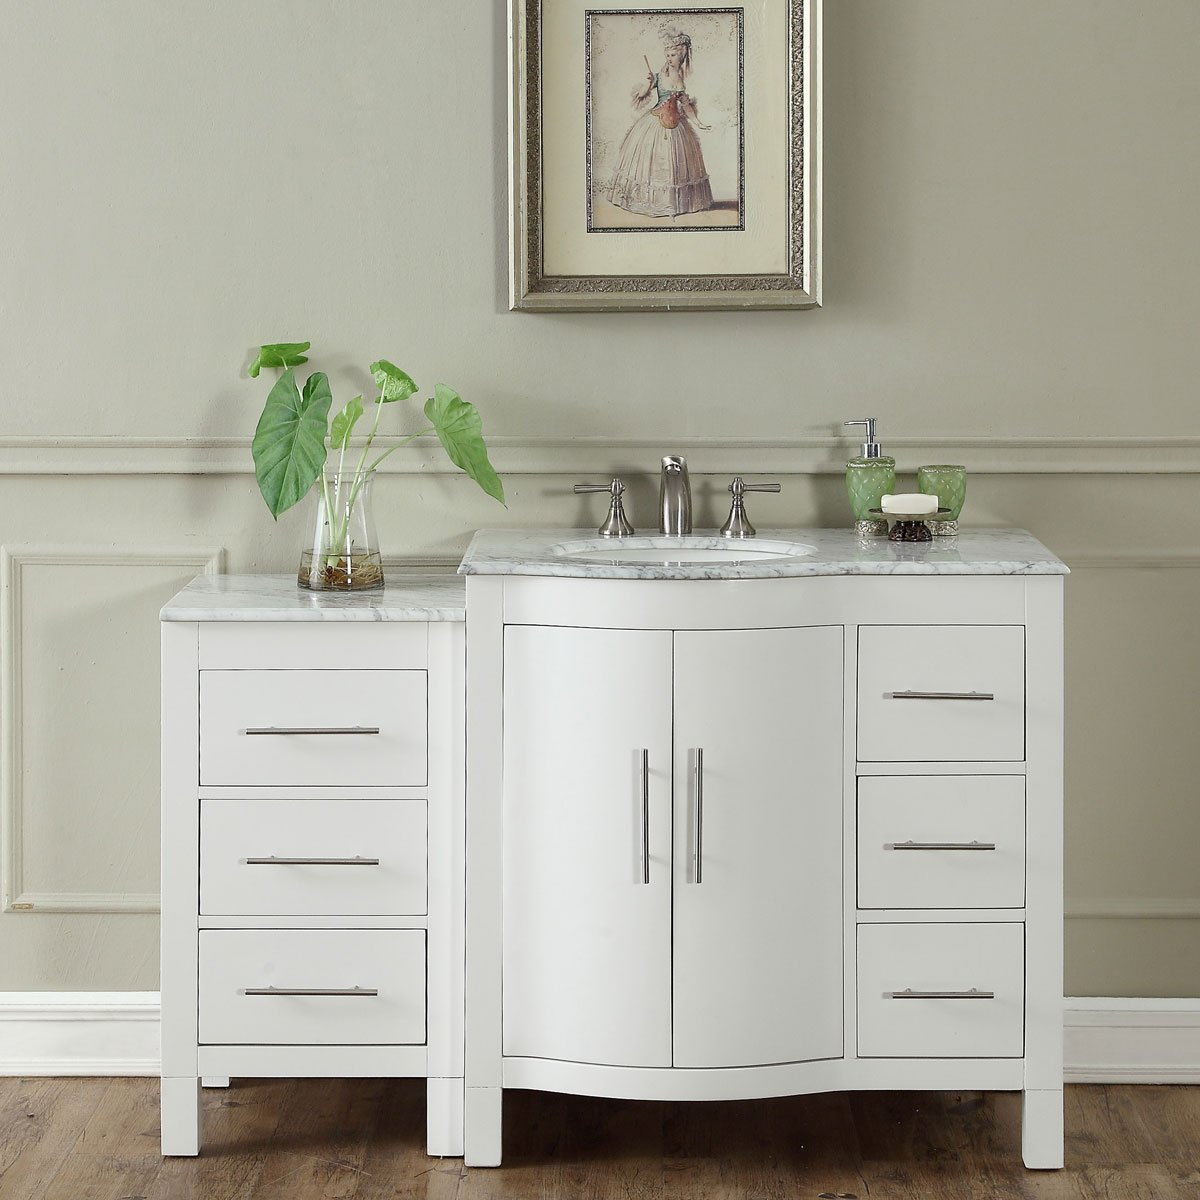 Modern Vanity Tops : Inch single sink contemporary bathroom vanity cabinet